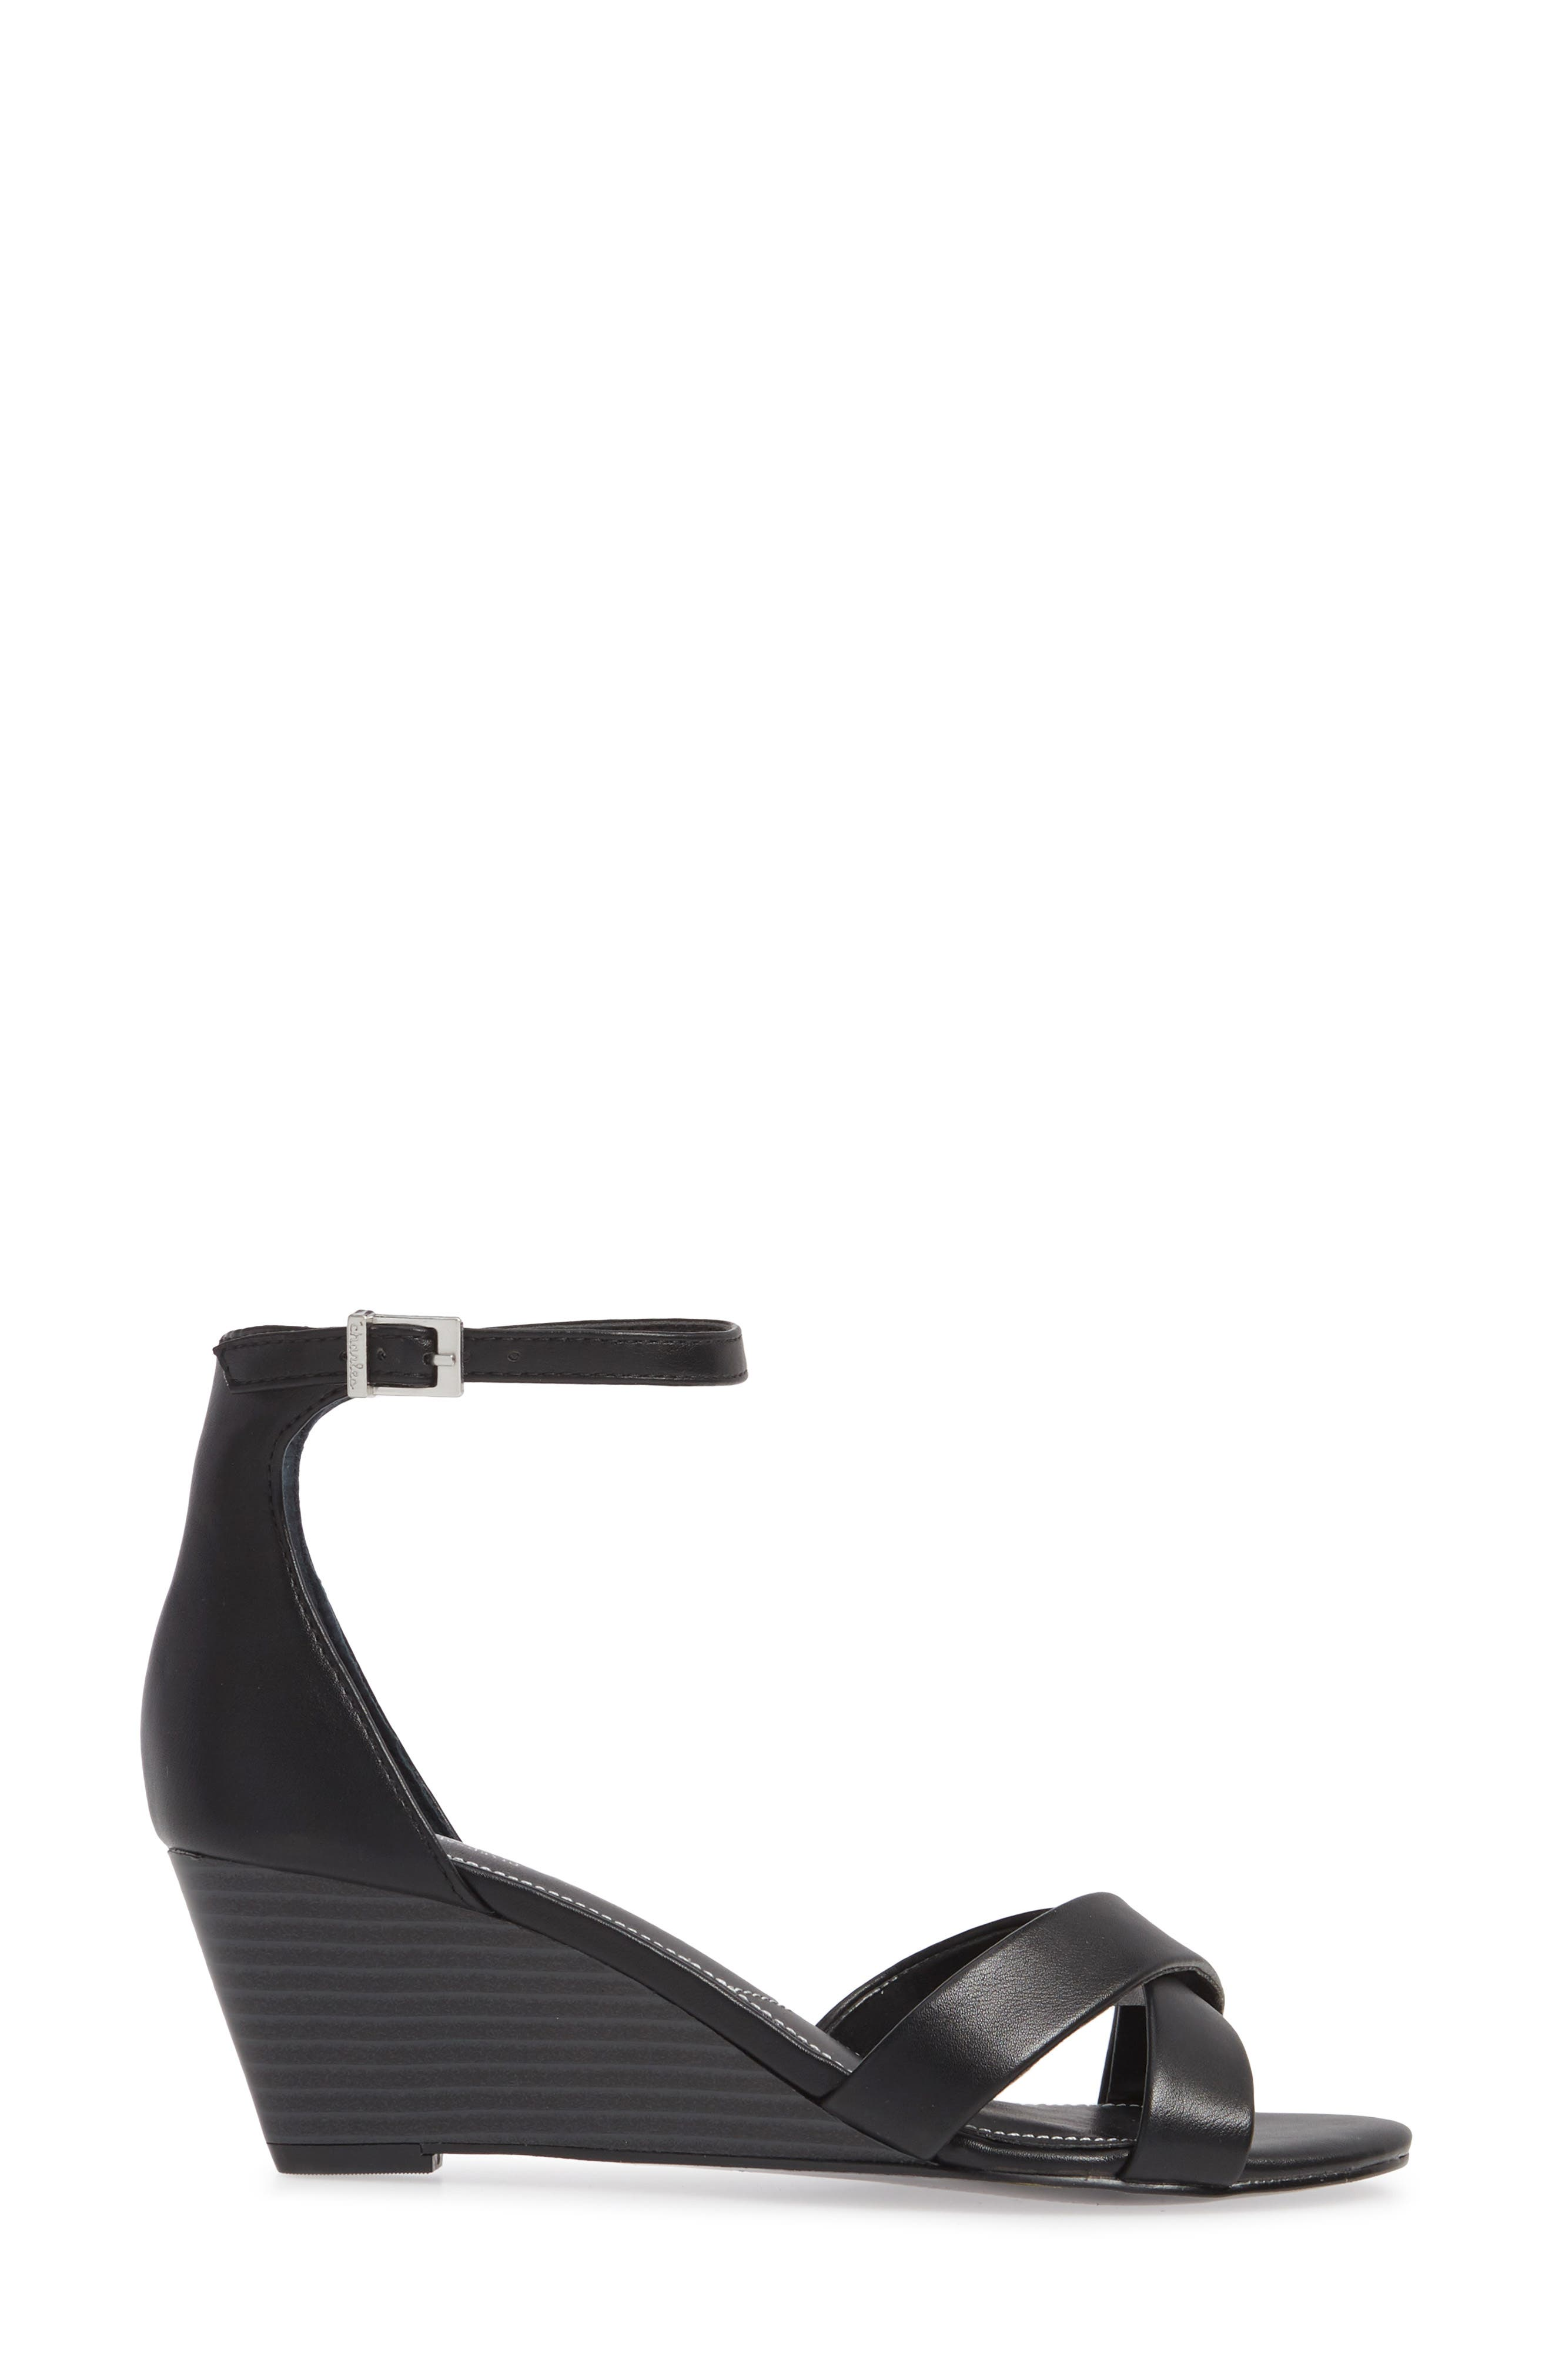 CHARLES BY CHARLES DAVID, Griffin Ankle Strap Wedge, Alternate thumbnail 3, color, BLACK FAUX LEATHER